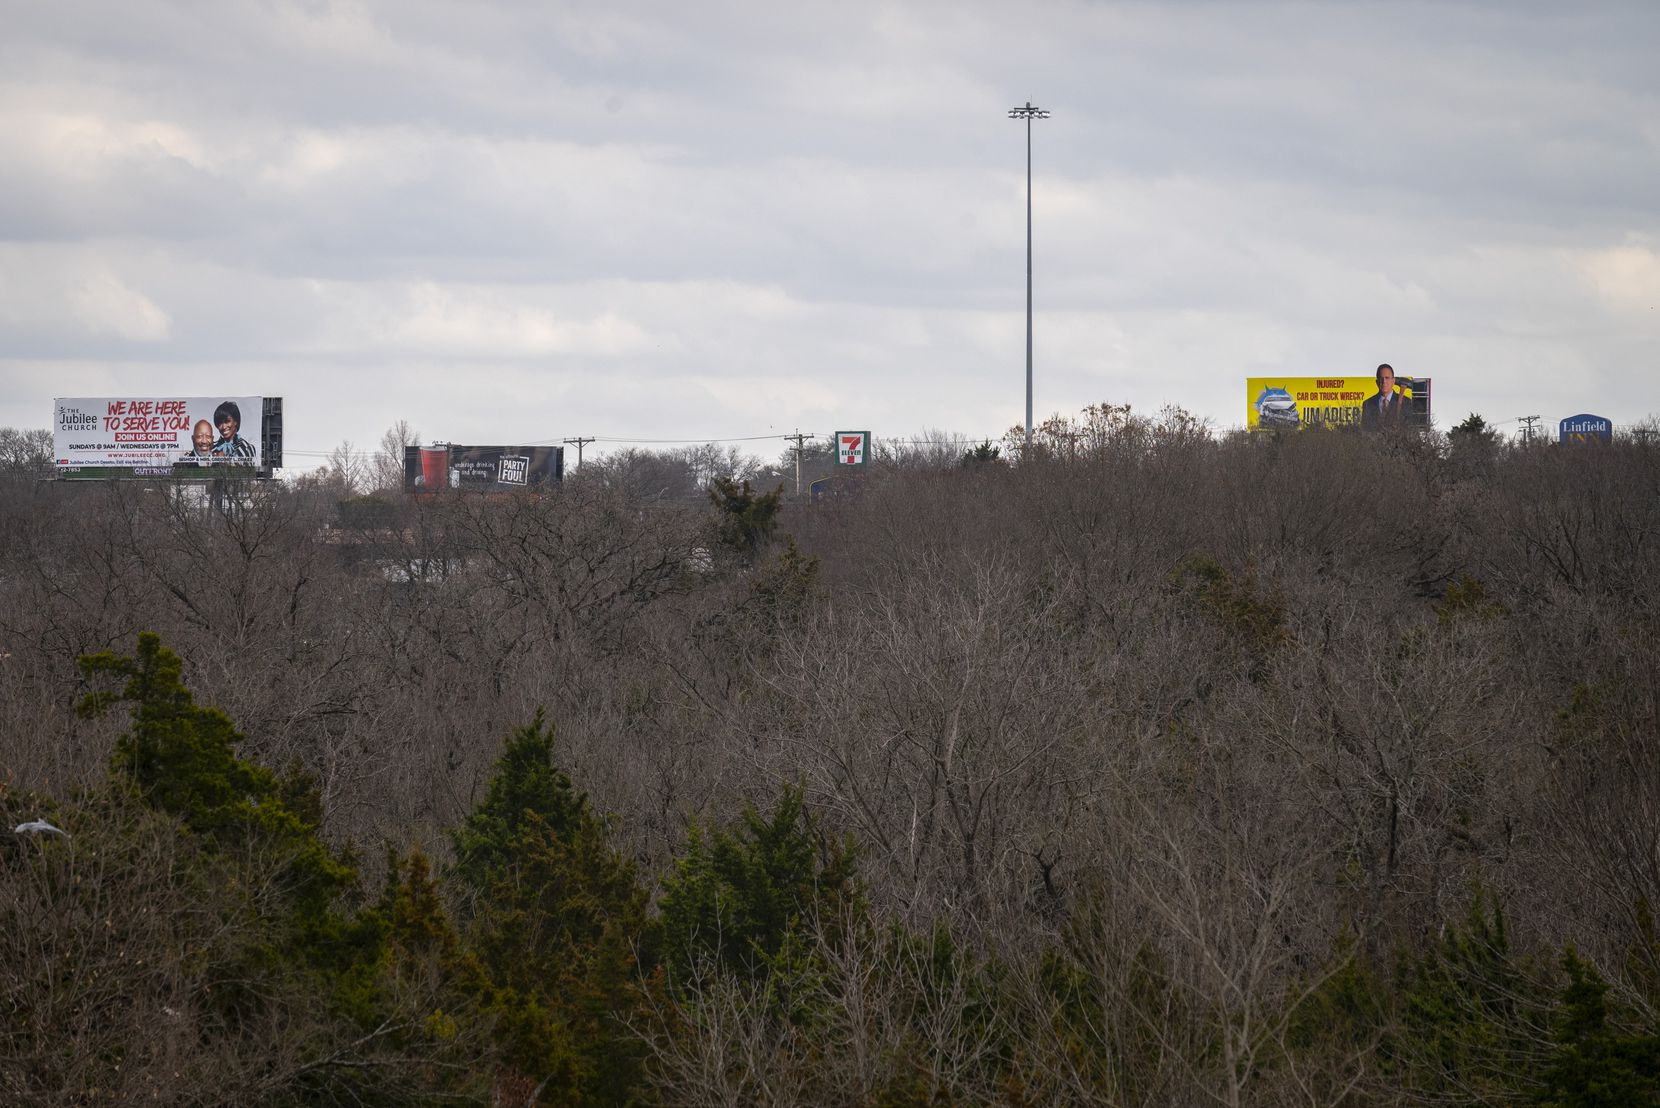 The newly acquired 82 acres near Interstate 35E in southern Dallas include an estimated 16,000 trees, according to the Trust for Public Land, which was instrumental in making the deal.